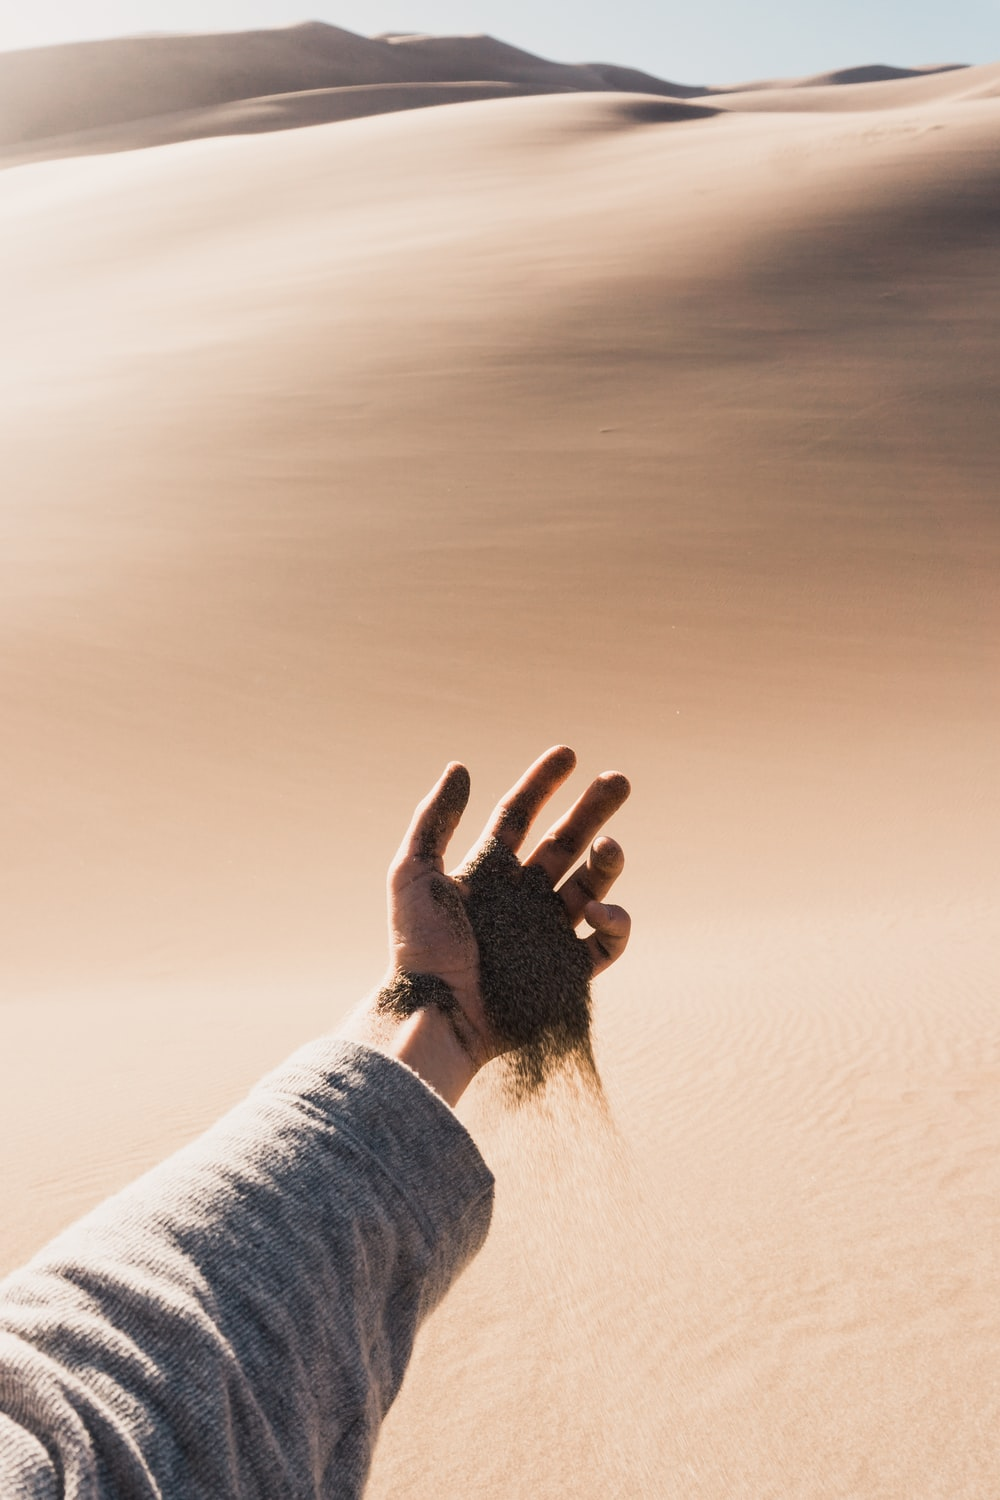 person dropping sand from his hand during daytinme